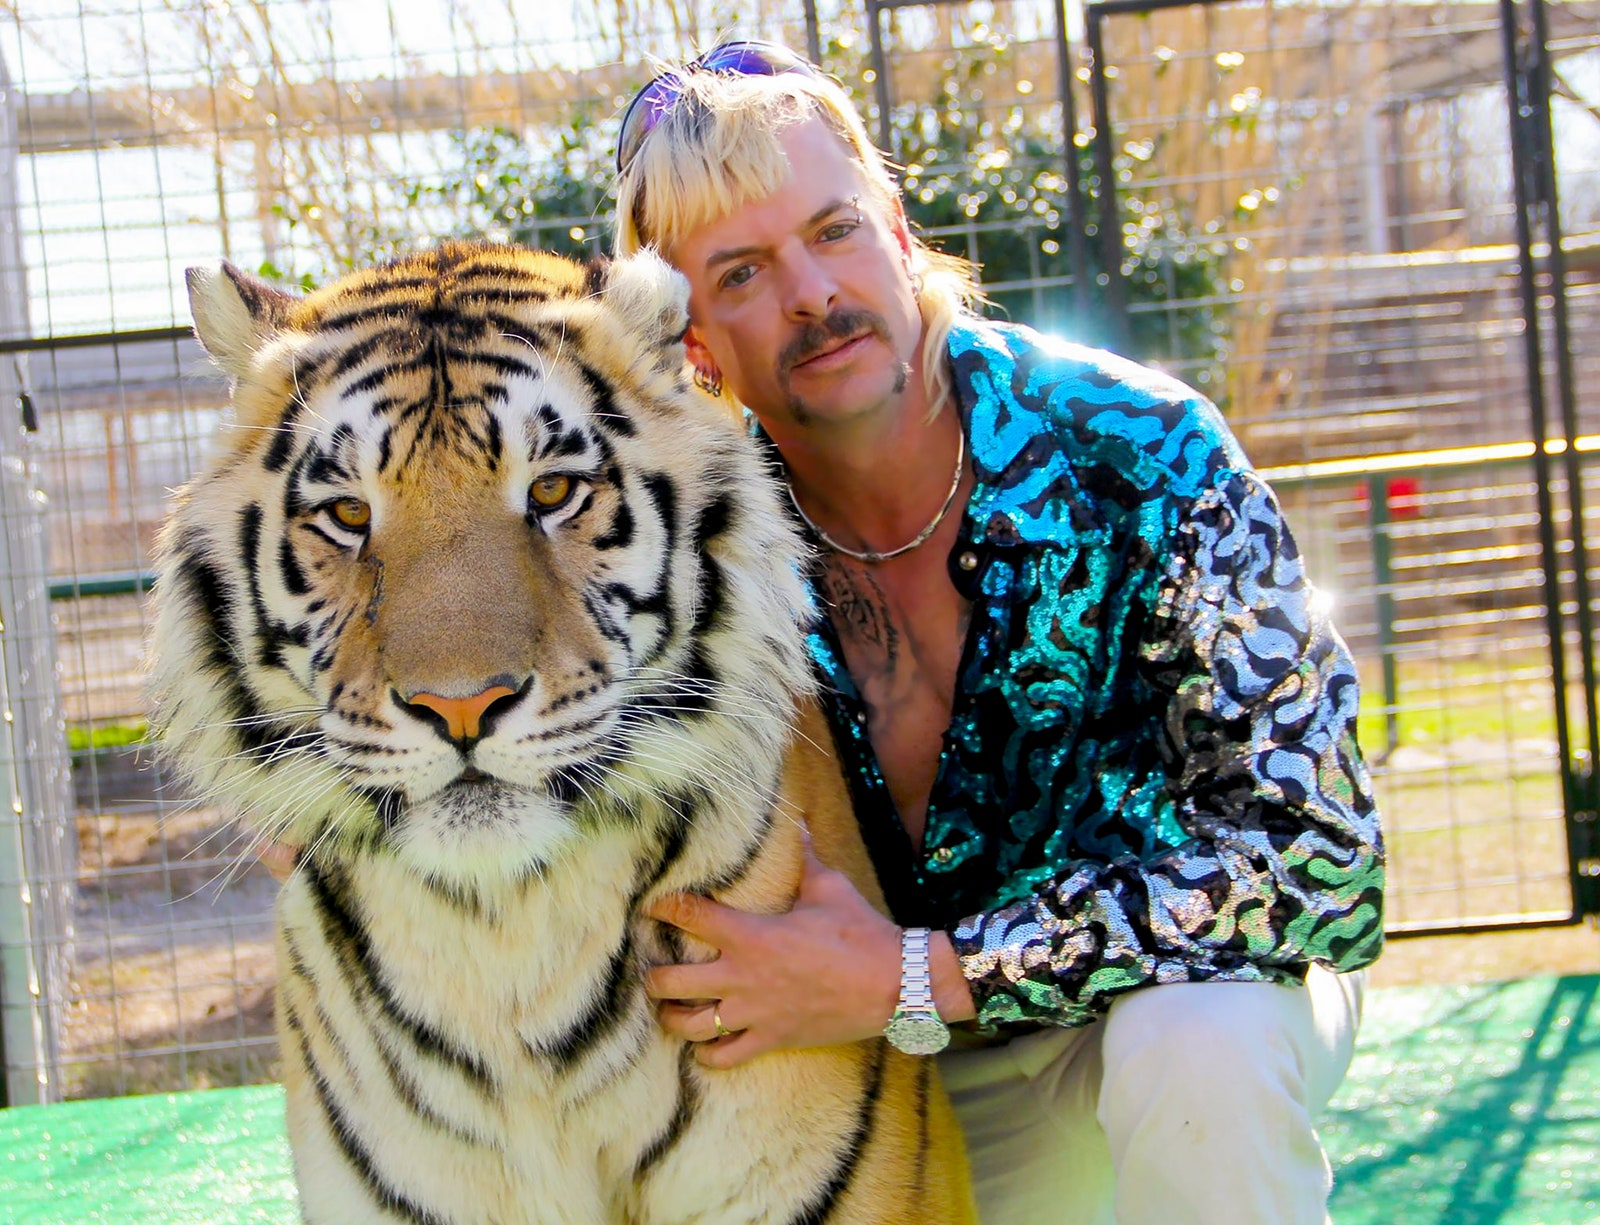 Tiger King Is Officially the Queerest Show on TV